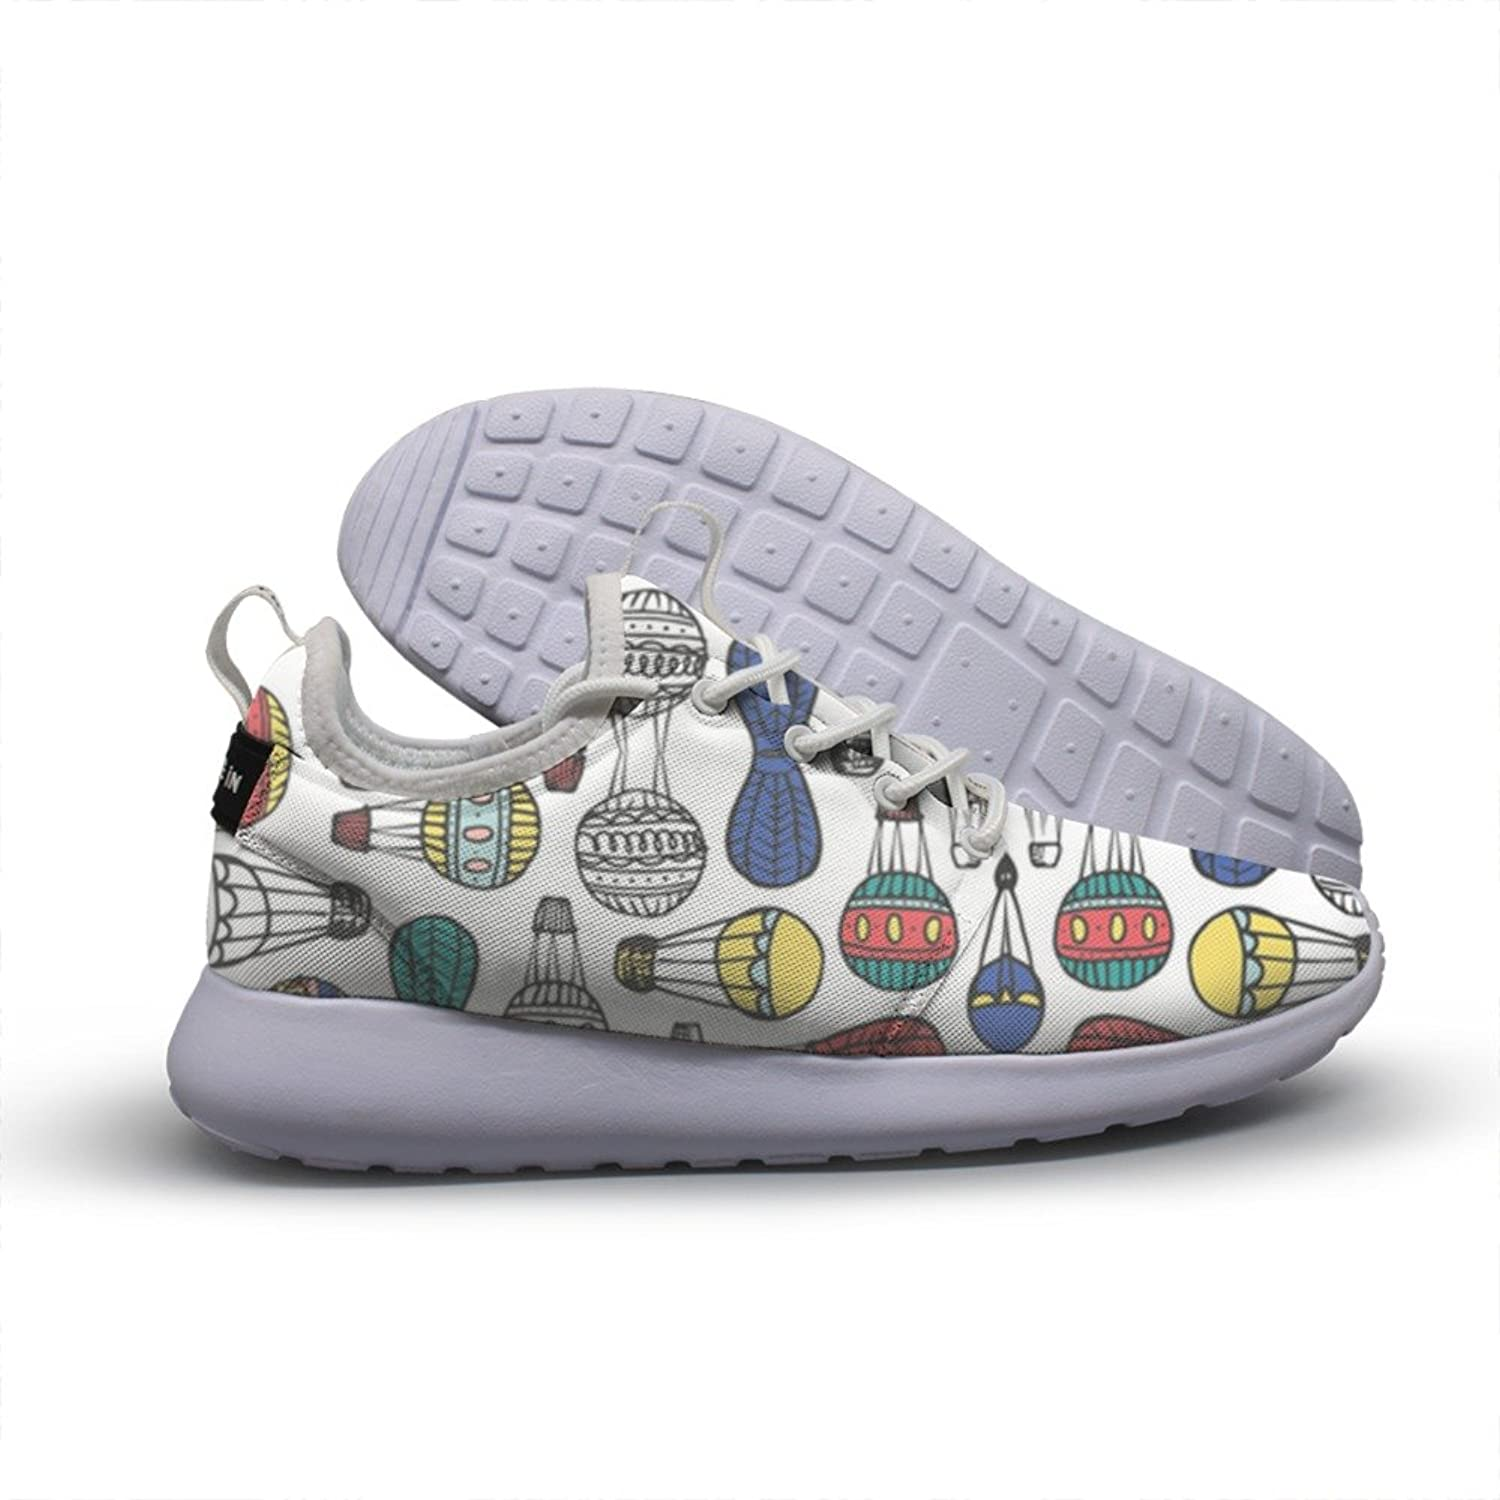 RTwkvv Beautiful Hot Air Balloon Pattern Women's Running shoes Fashion Breathable Sneakers Soft Casual Athletic Lightweight